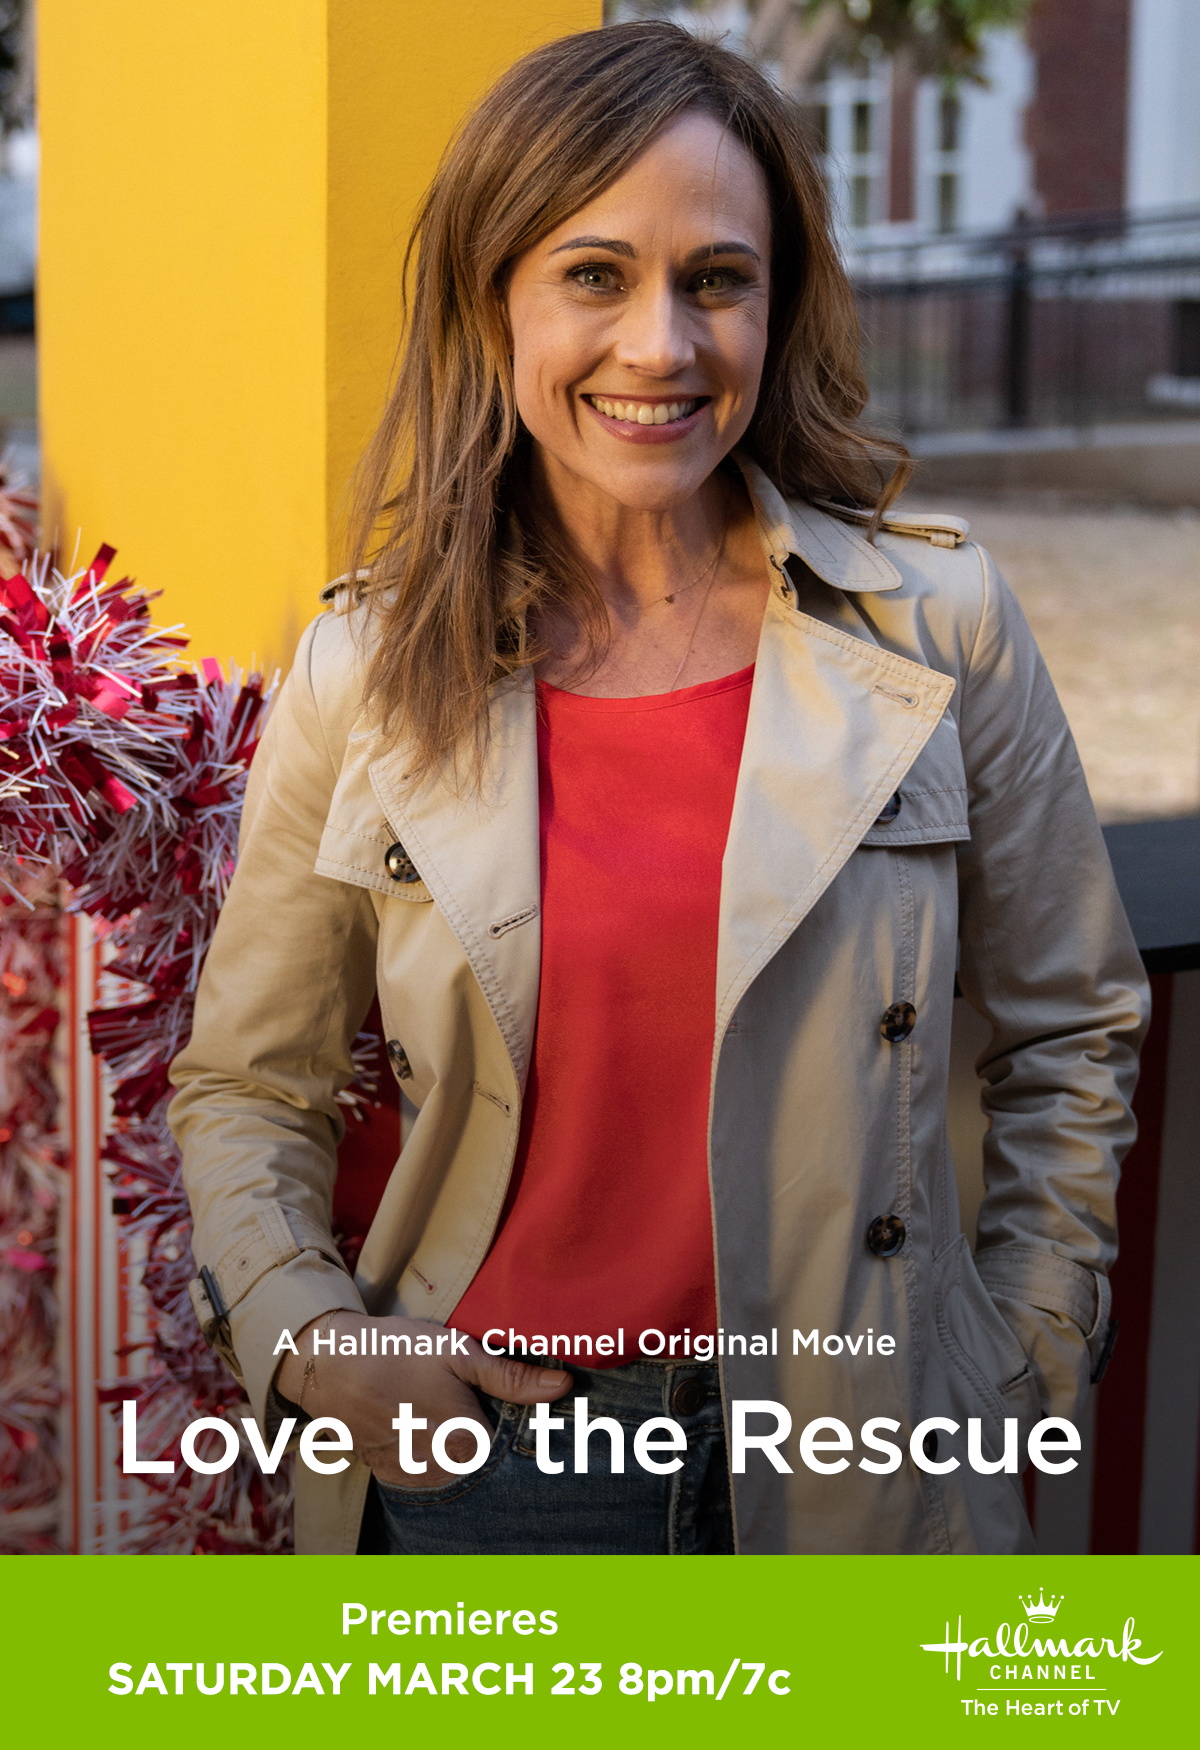 Kate Nikki Deloach Works As An Animator But When She Has To Share Custody Of A Rescue Dog With Eric Michael Hallmark Movies Hallmark Channel Romance Movies